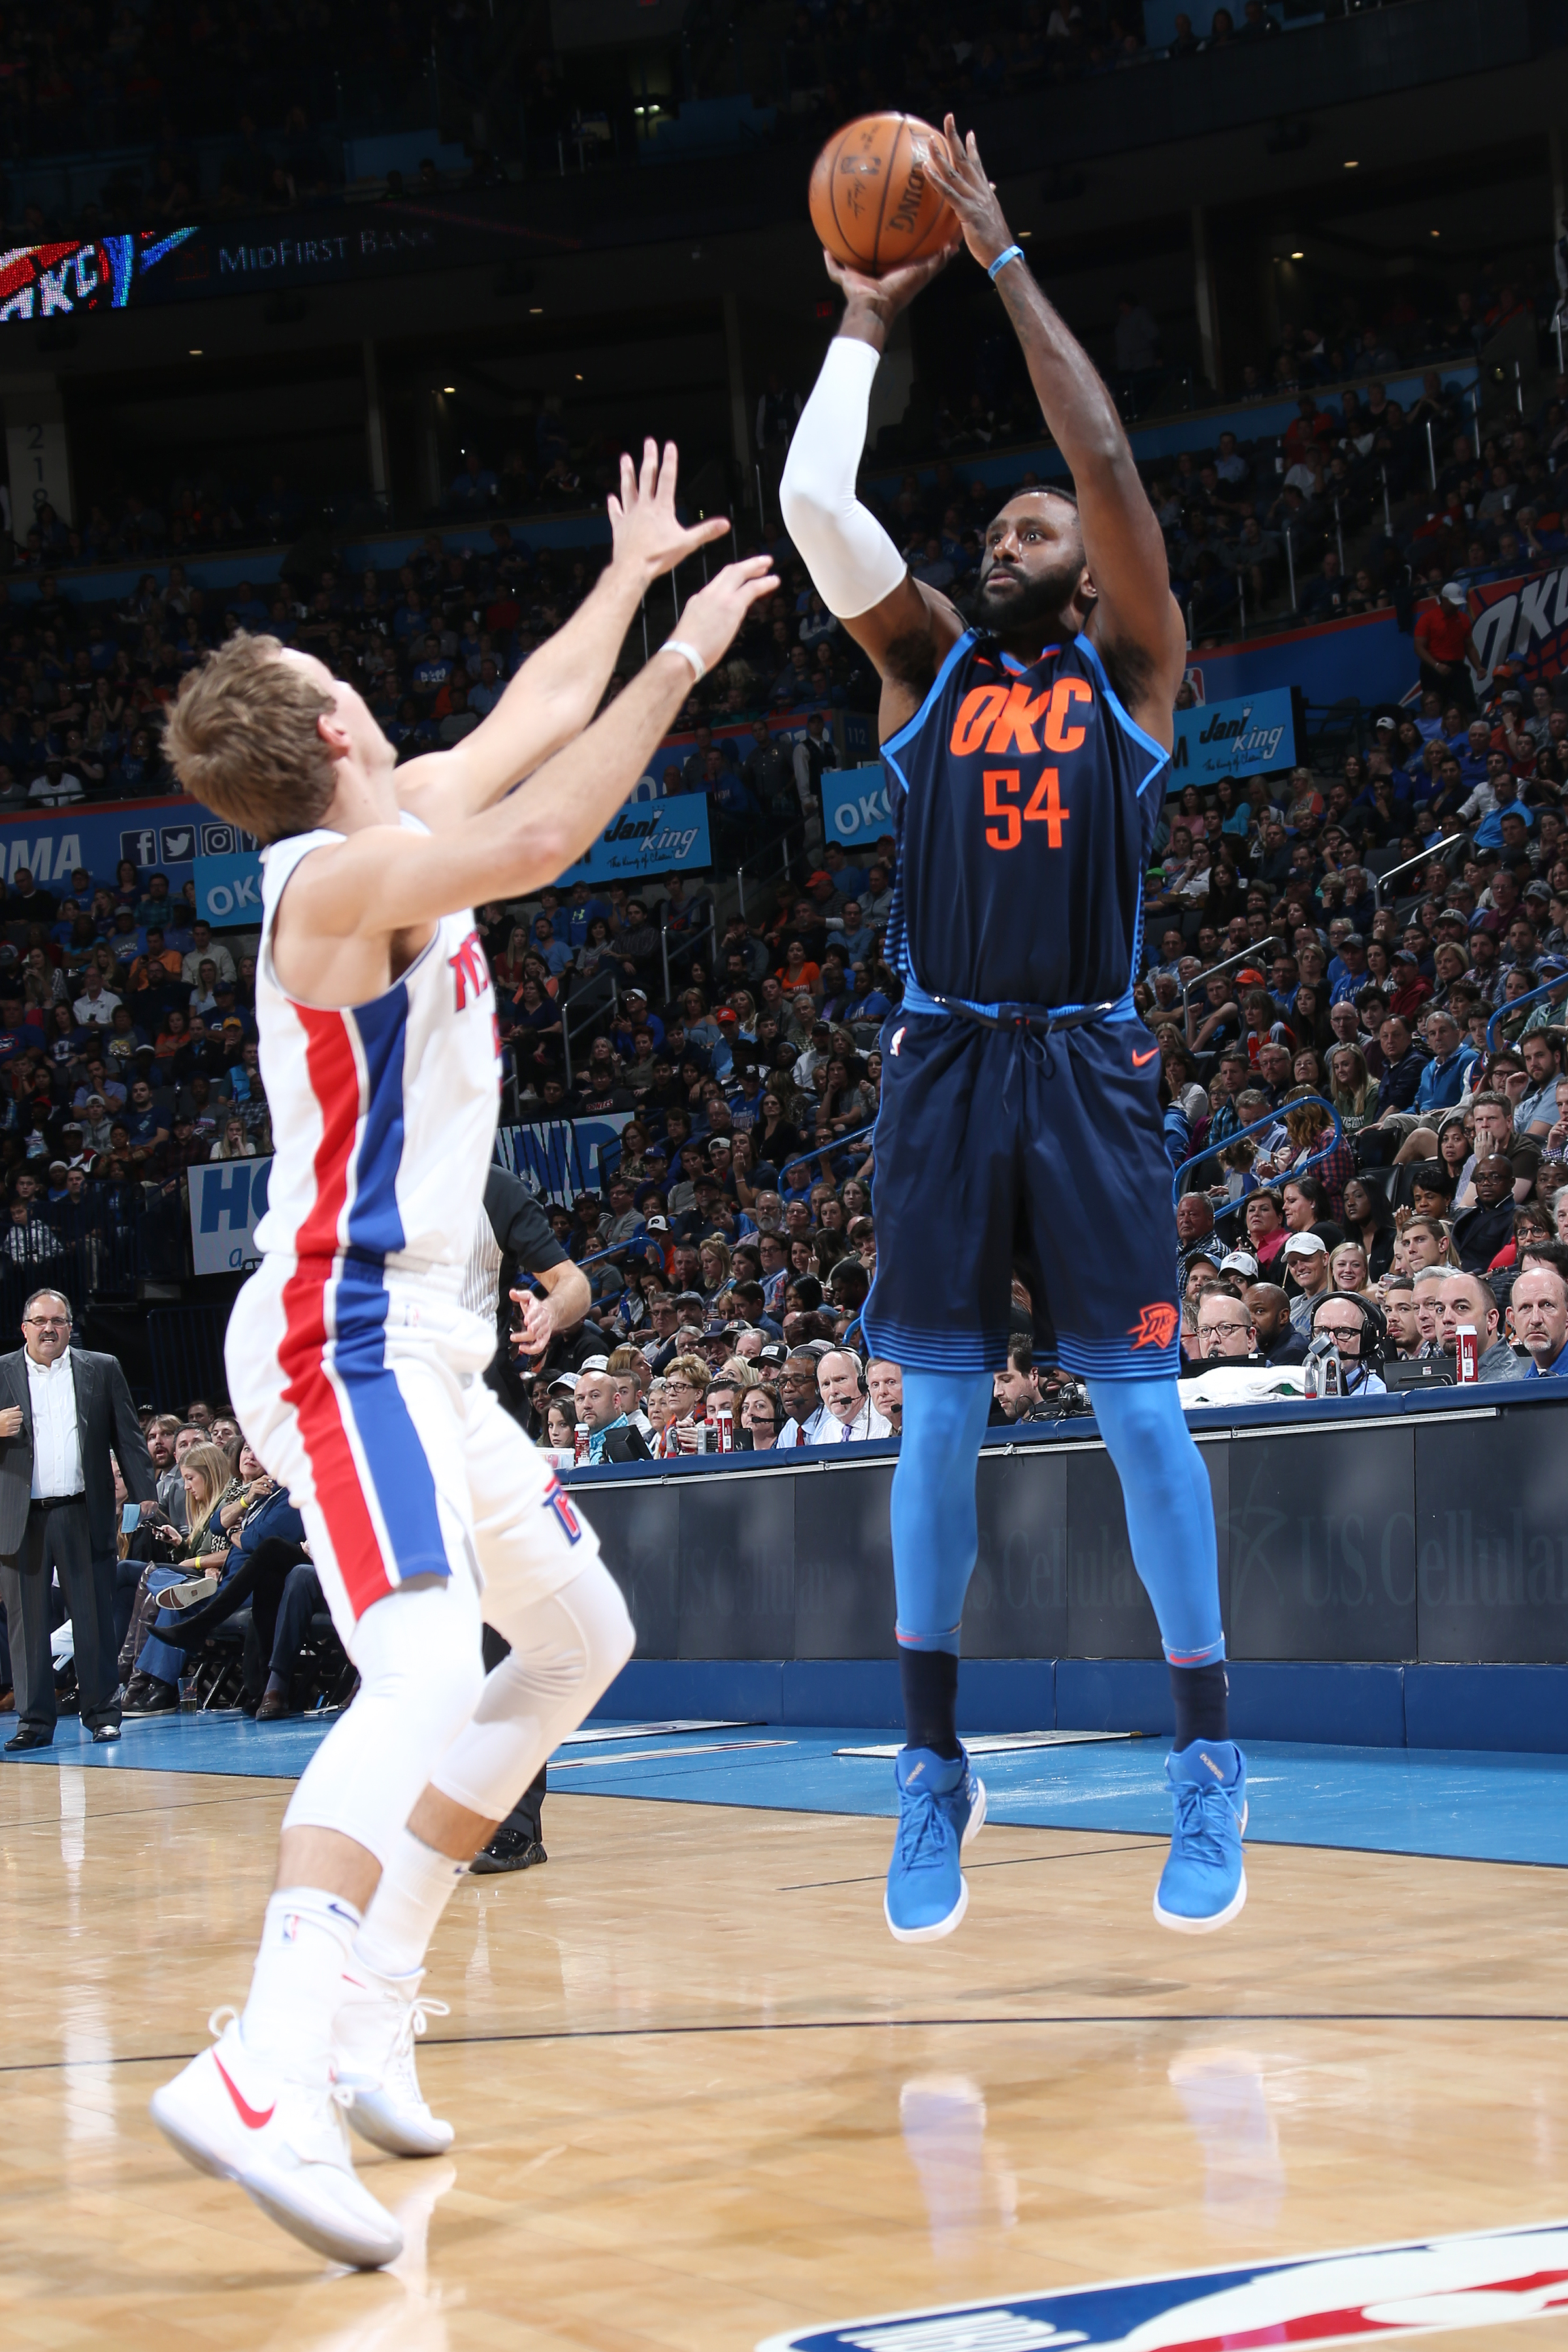 OKC Thunder need to increase Patrick Patterson's minutes